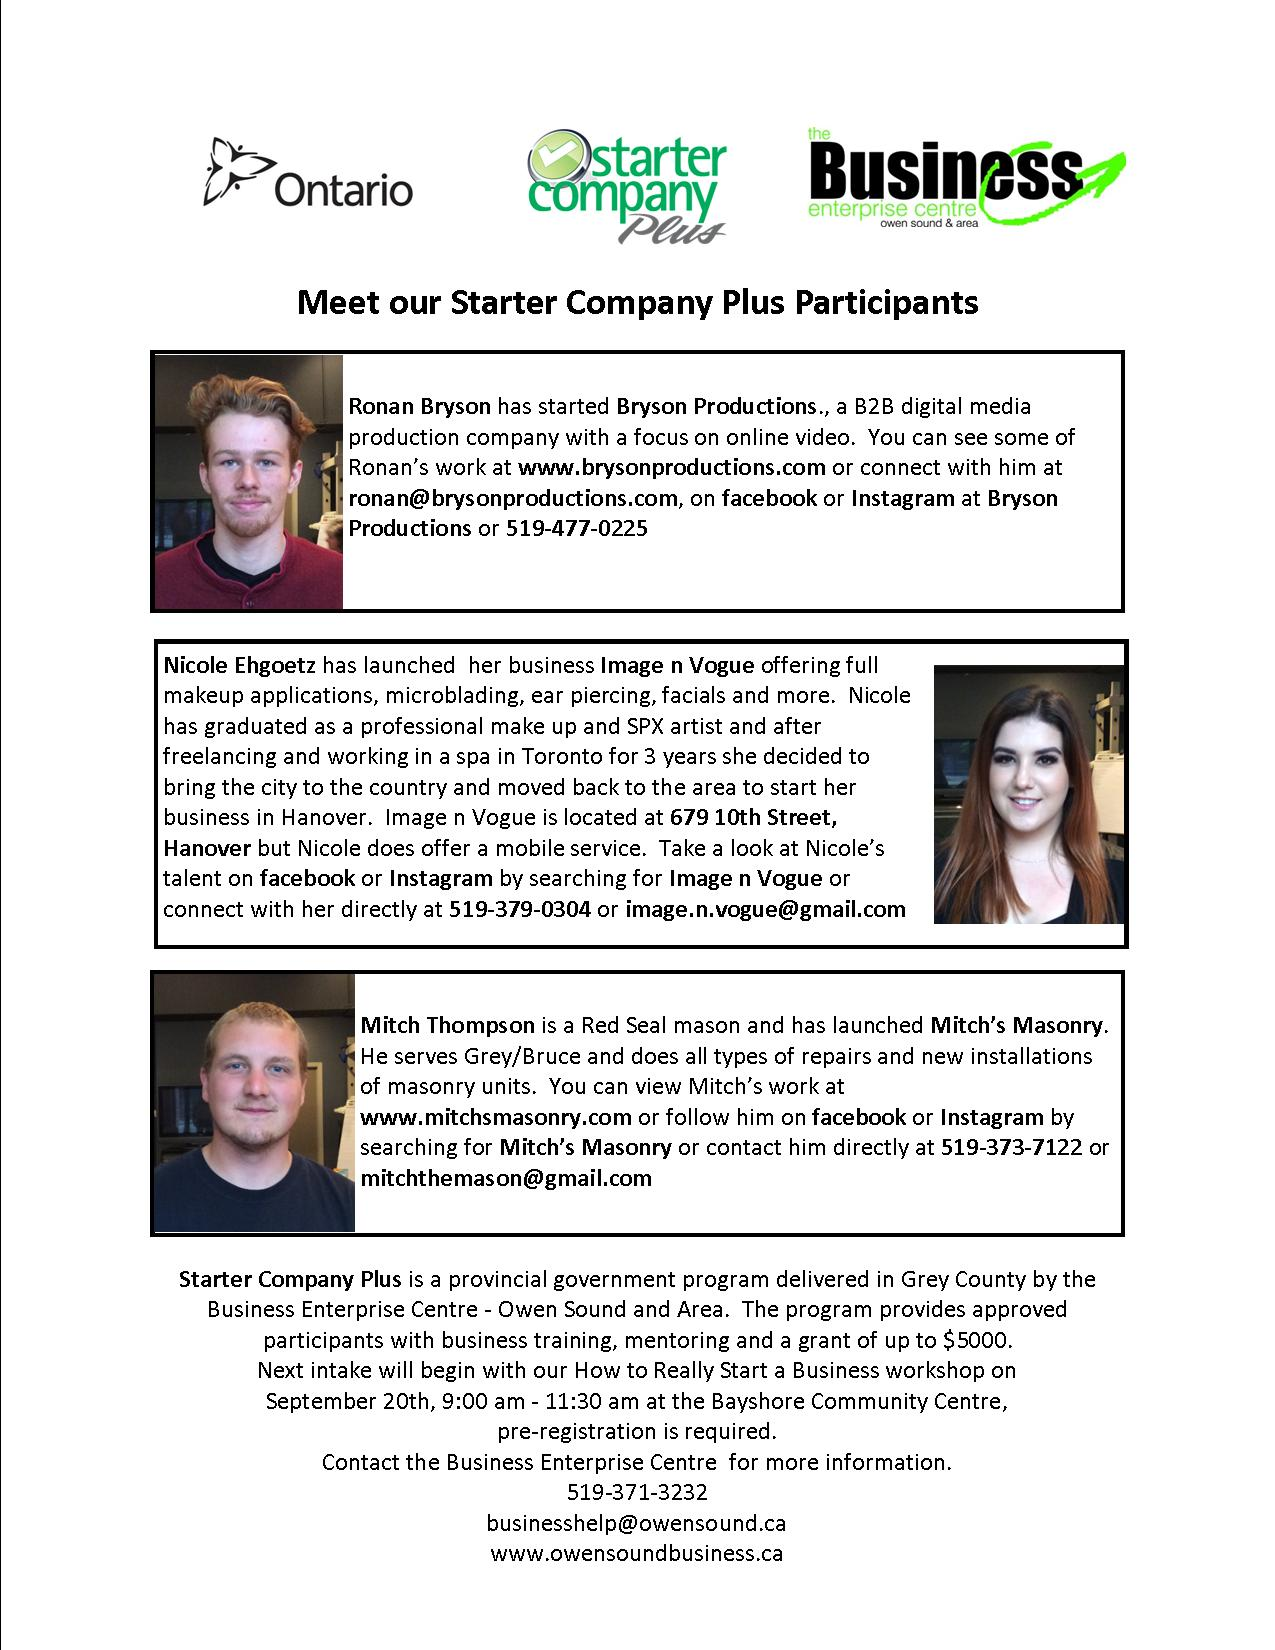 All Participants Feature Starter Co